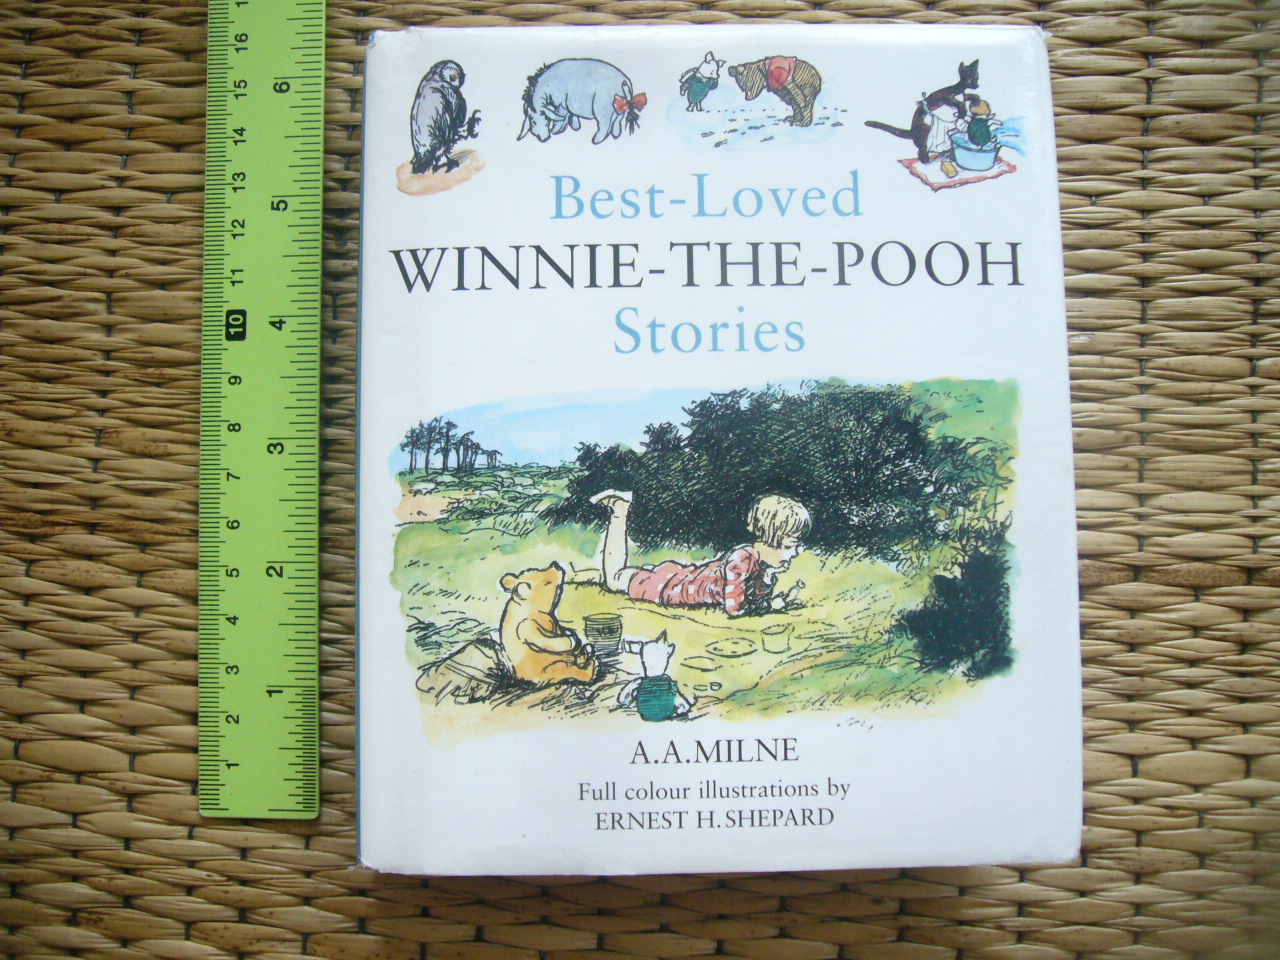 Best-Loved WINNIE-THE-POOH Stories